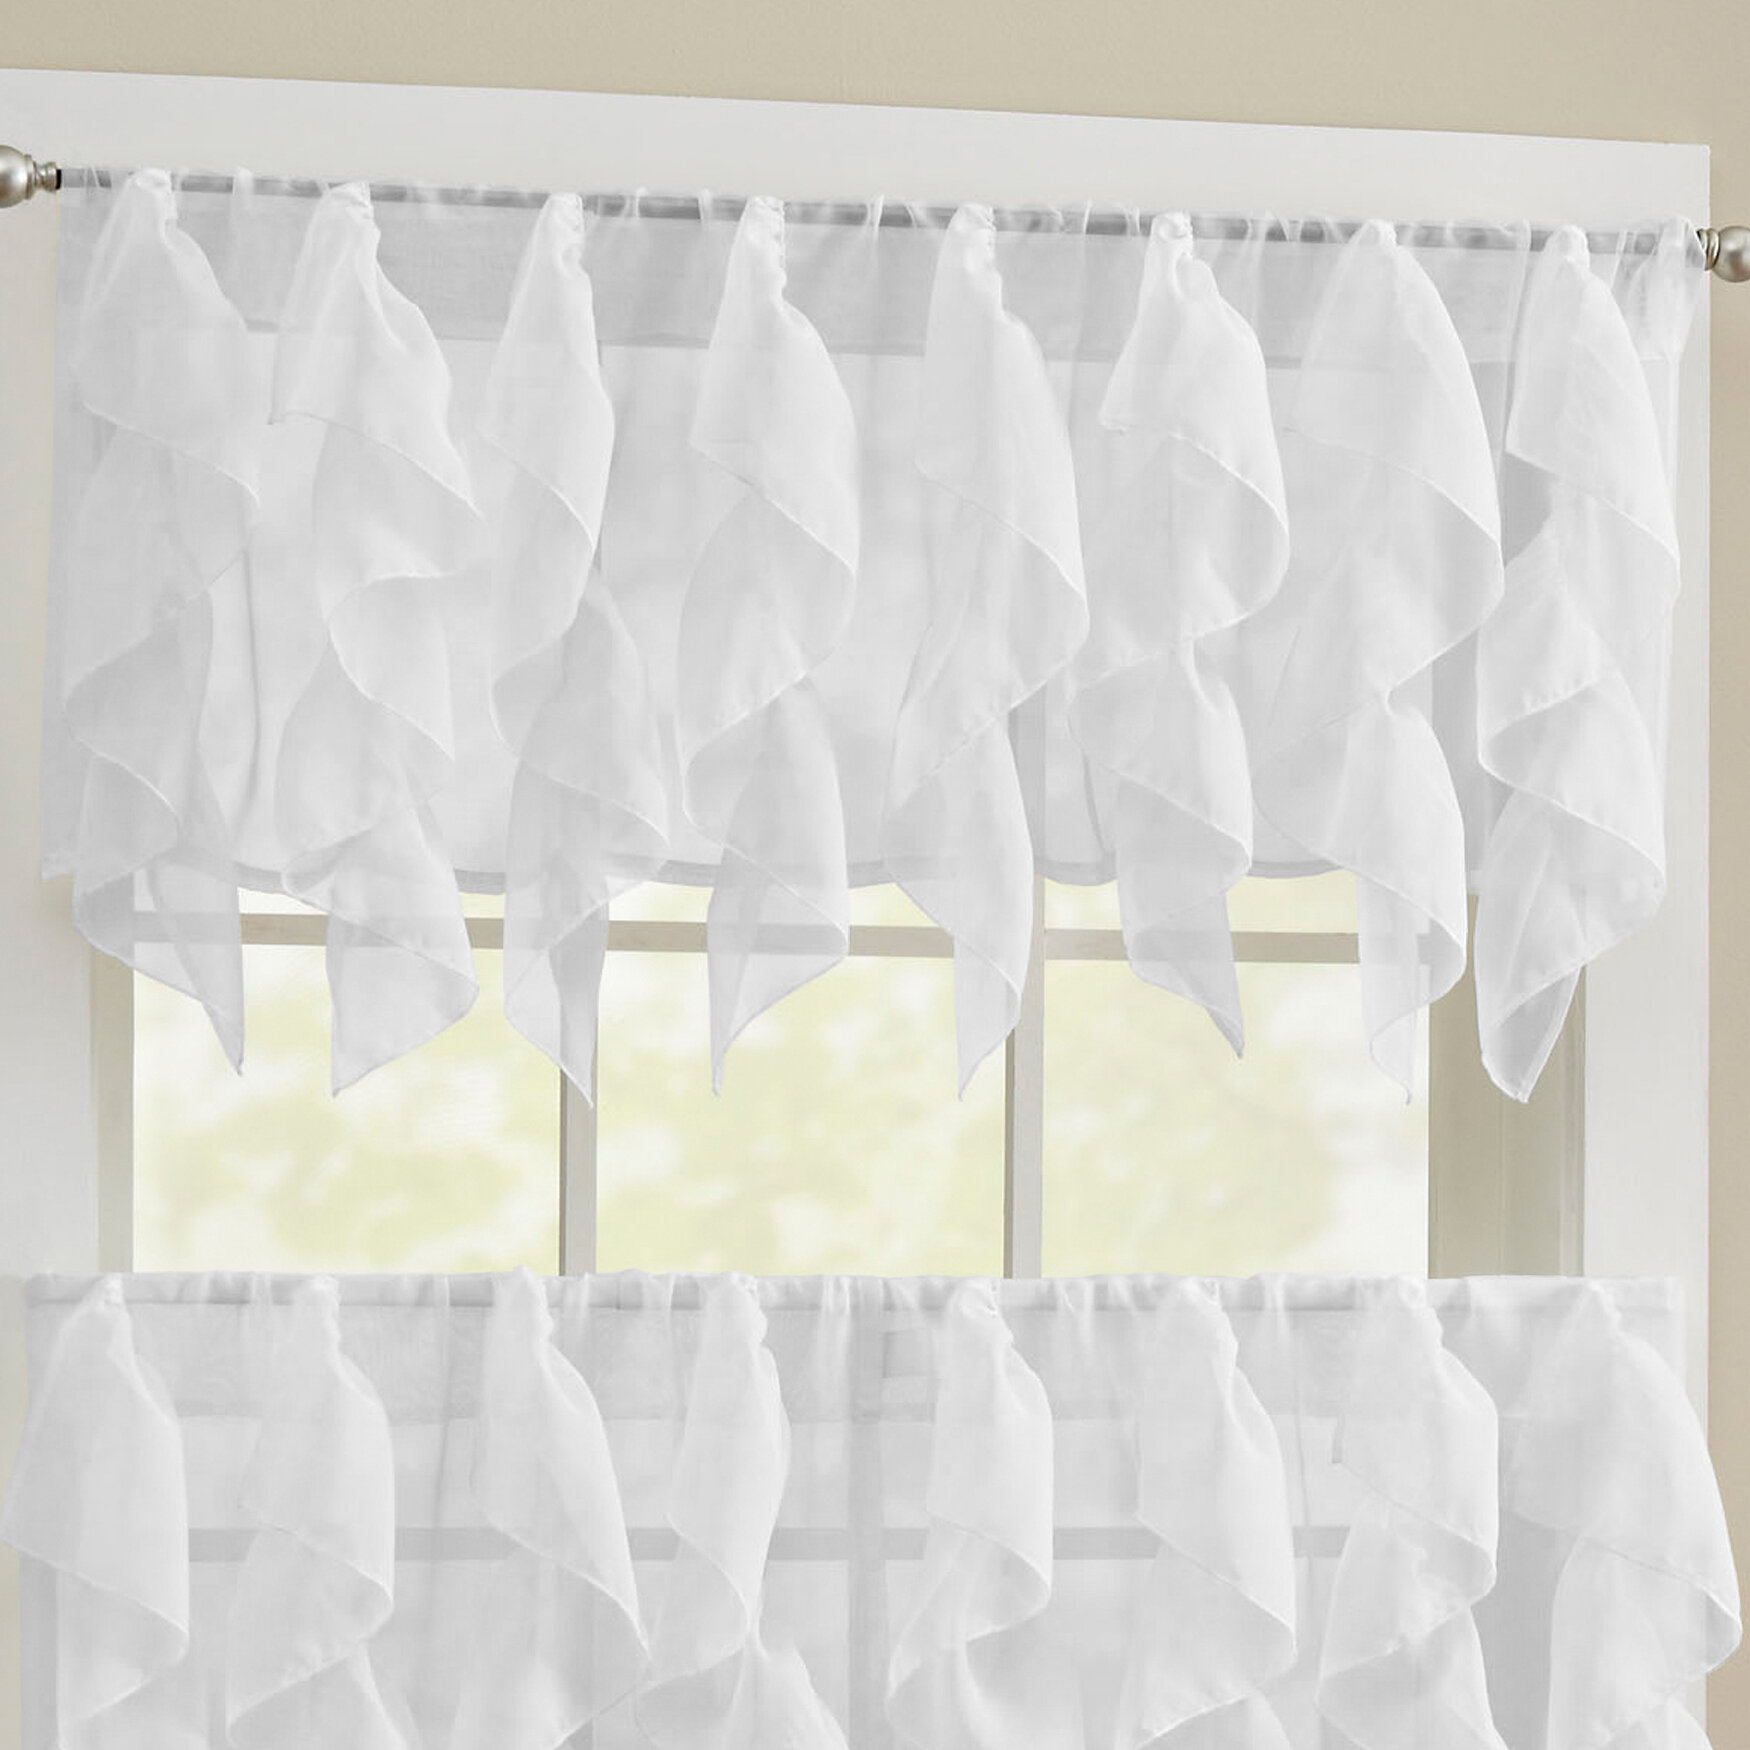 Alonza Window Valance with Maize Vertical Ruffled Waterfall Valance and Curtain Tiers (Image 1 of 20)